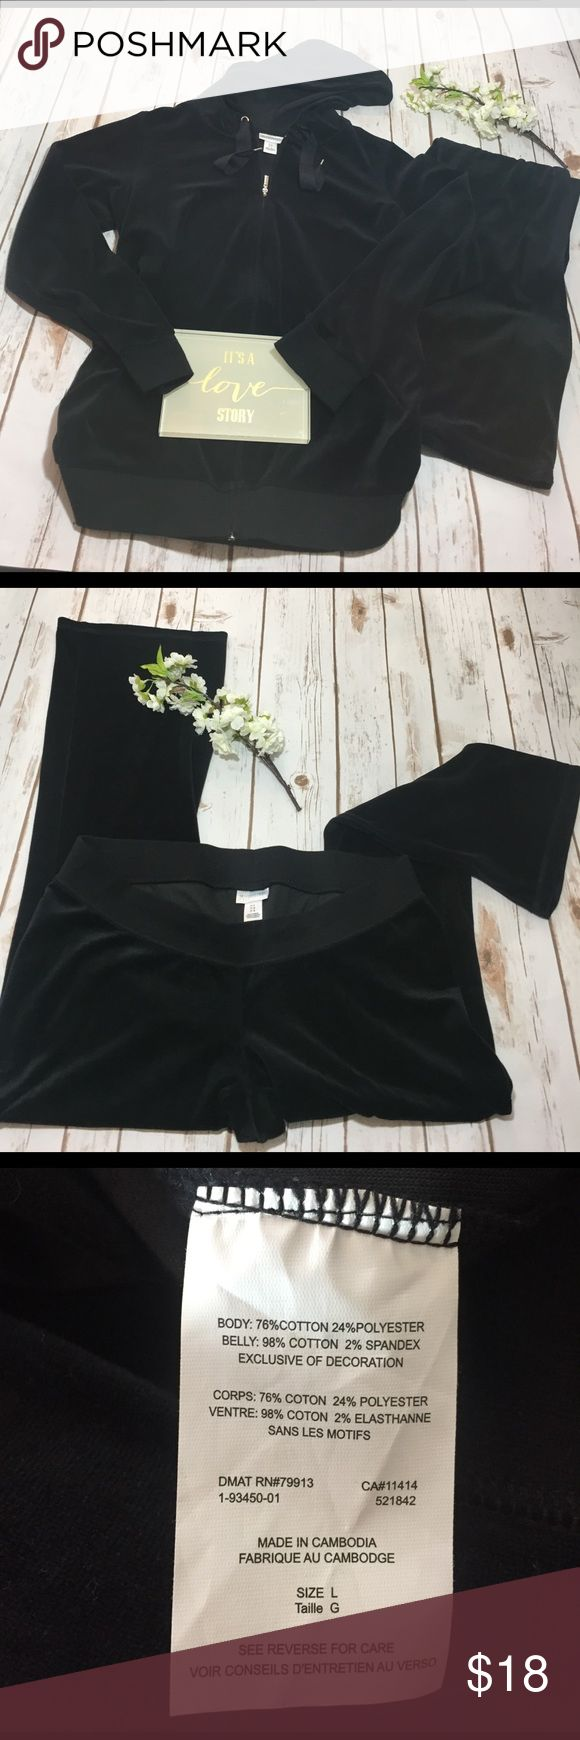 Motherhood Maternity black hoodie and pant set Has the soft velour feeling on the set, top zips up with a hoodie, ruched on sides for extra comfort, bottoms dip lower on the waist for more room for tummy, great condition Motherhood Maternity Intimates & Sleepwear